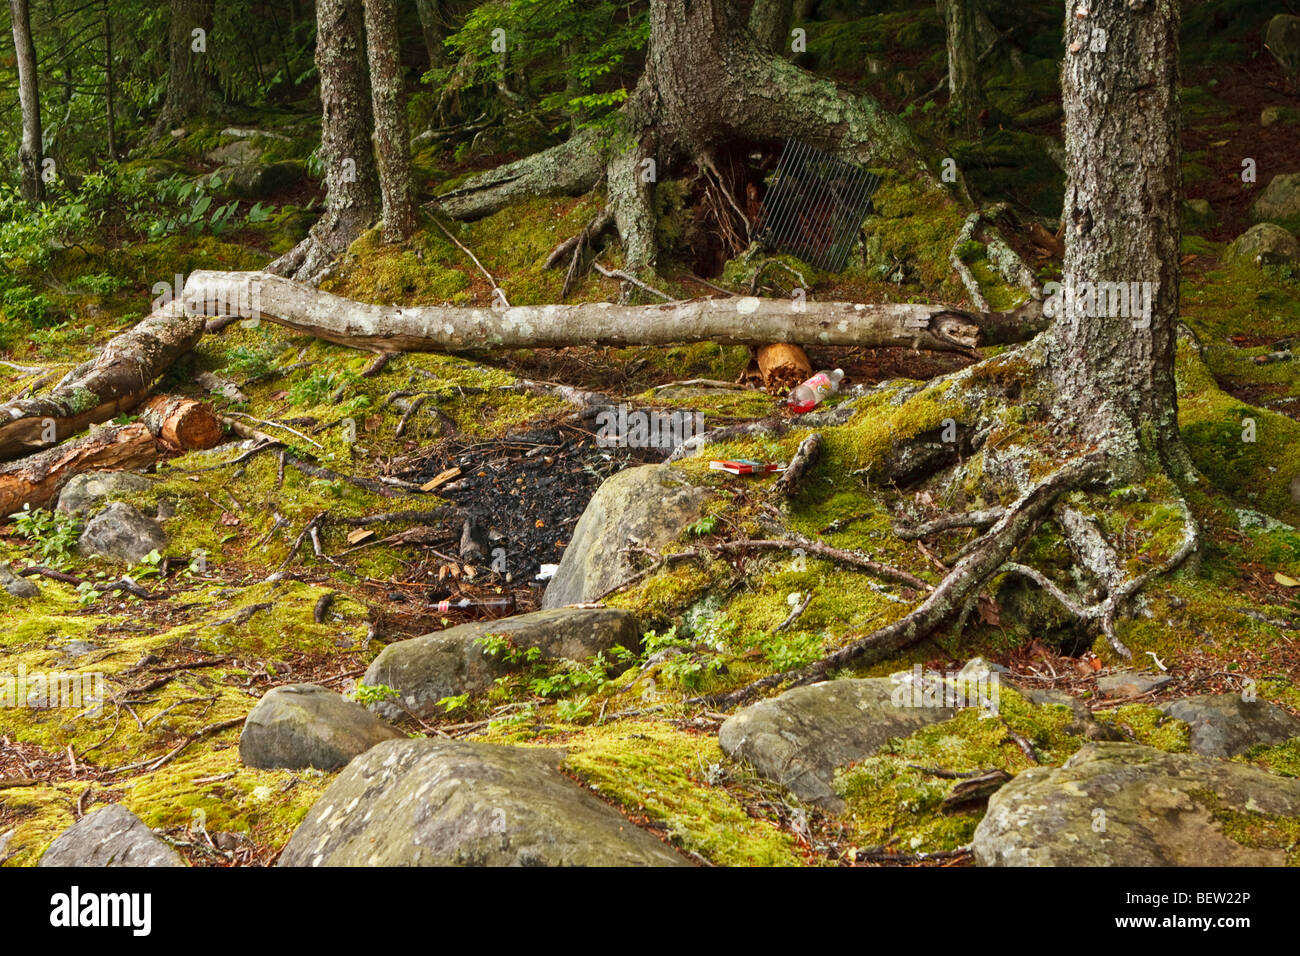 Irresponsible hikers set campfires in forest near residential neighborhood. - Stock Image